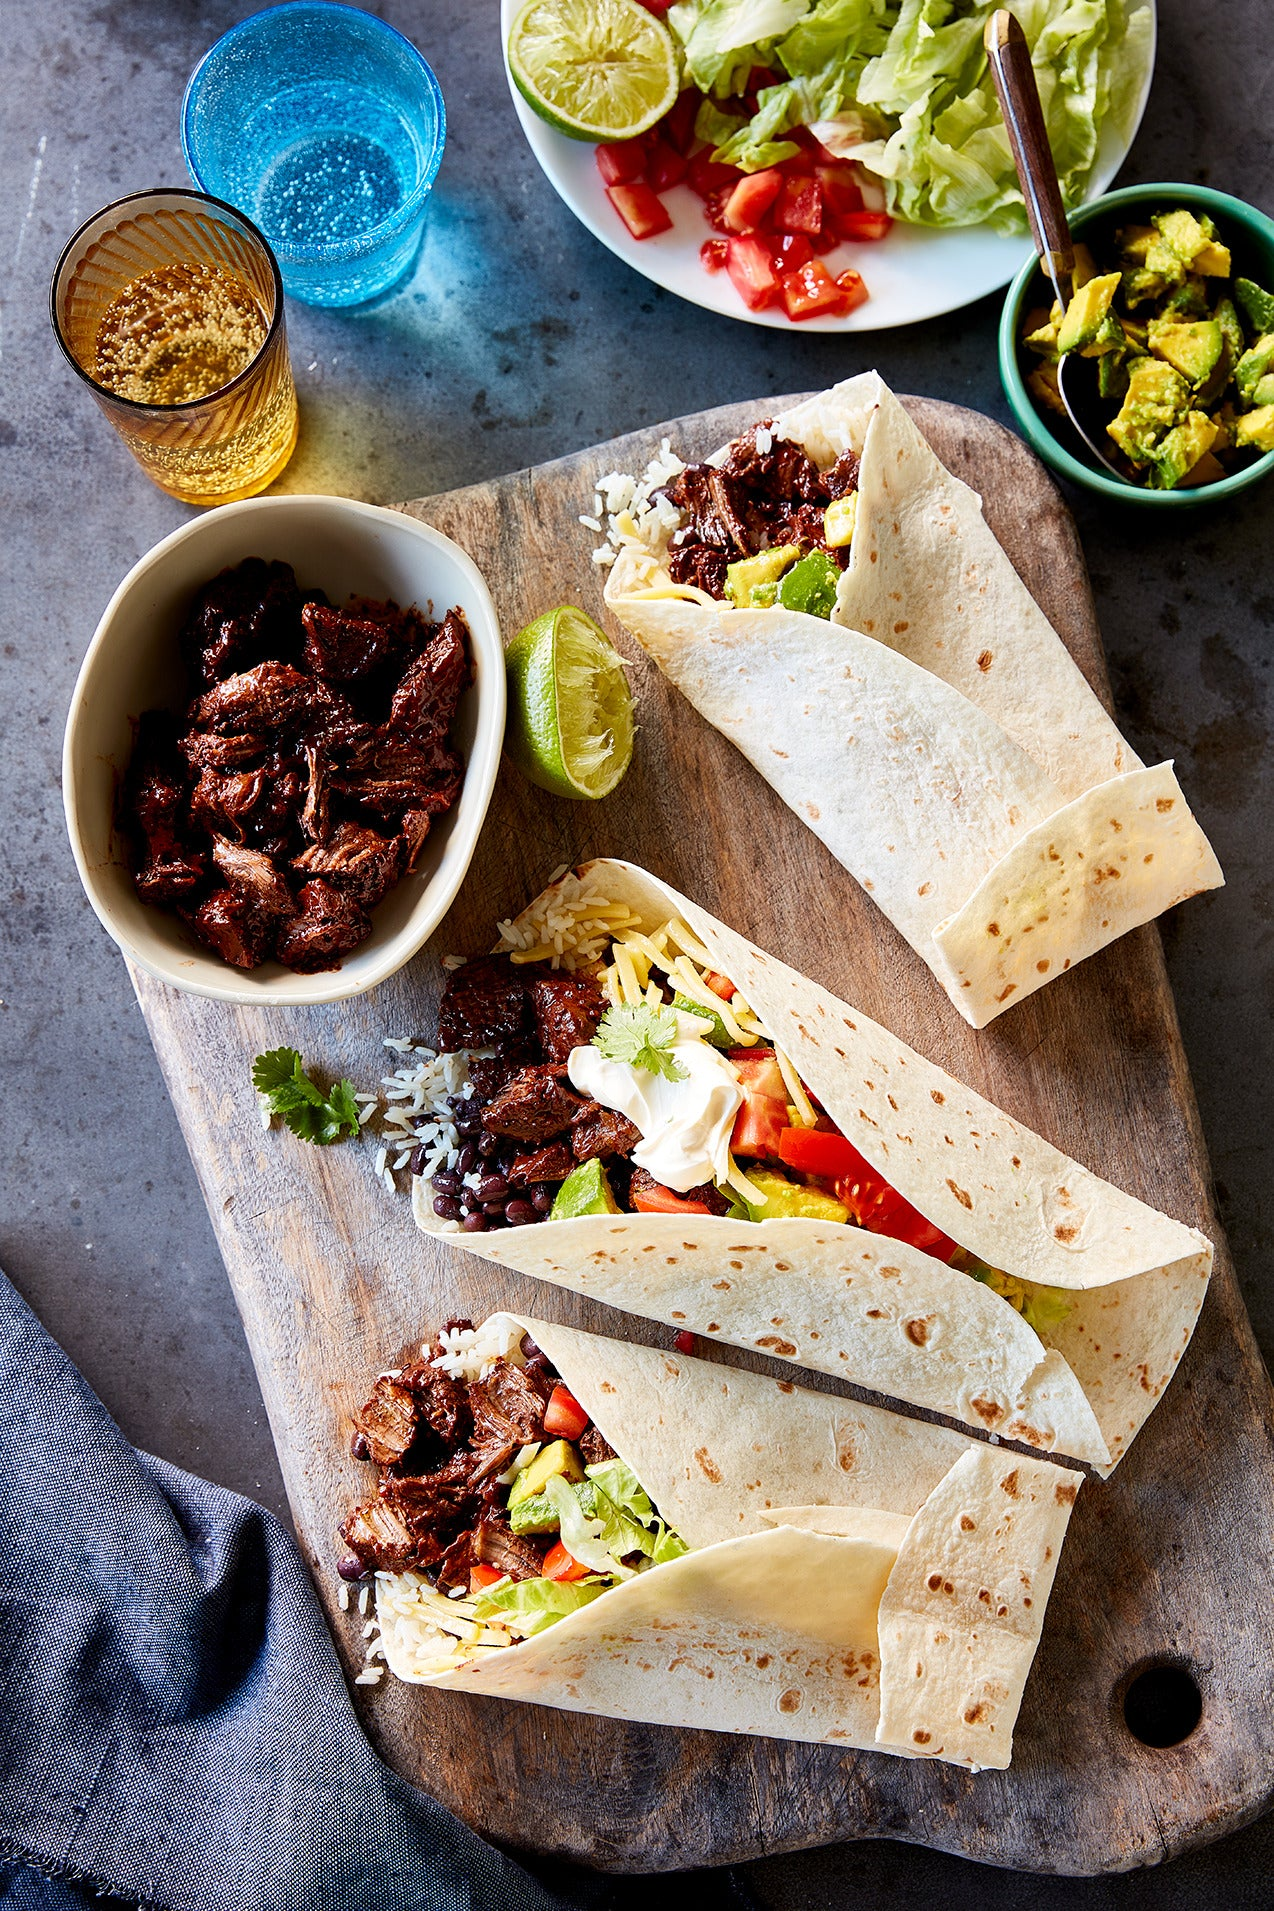 CHUCK STEAK BURRITO